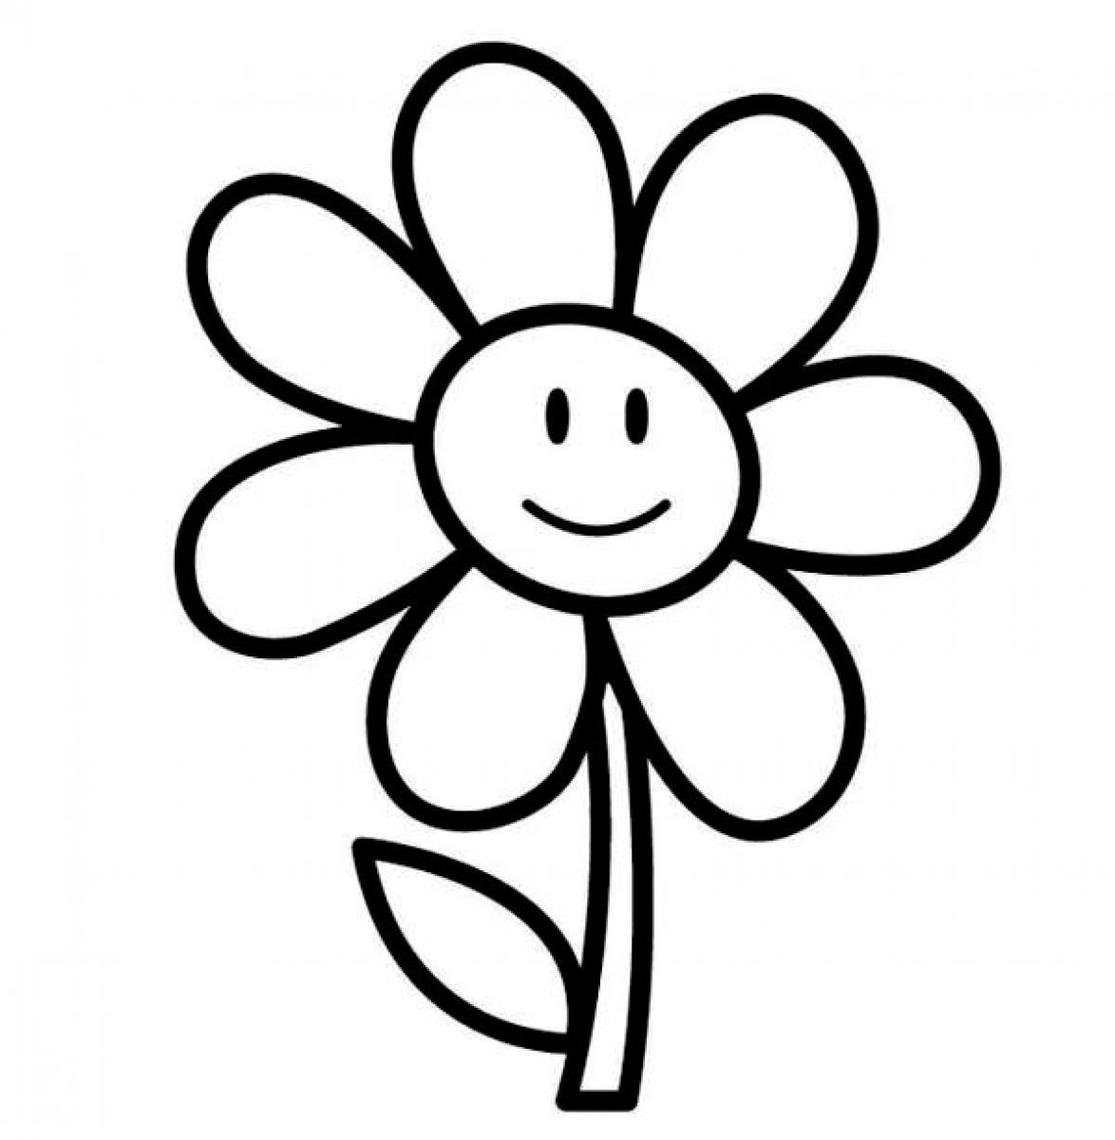 Clipart images of flwers black and white svg black and white download Flower Black And White Clipart | Free download best Flower Black And ... svg black and white download